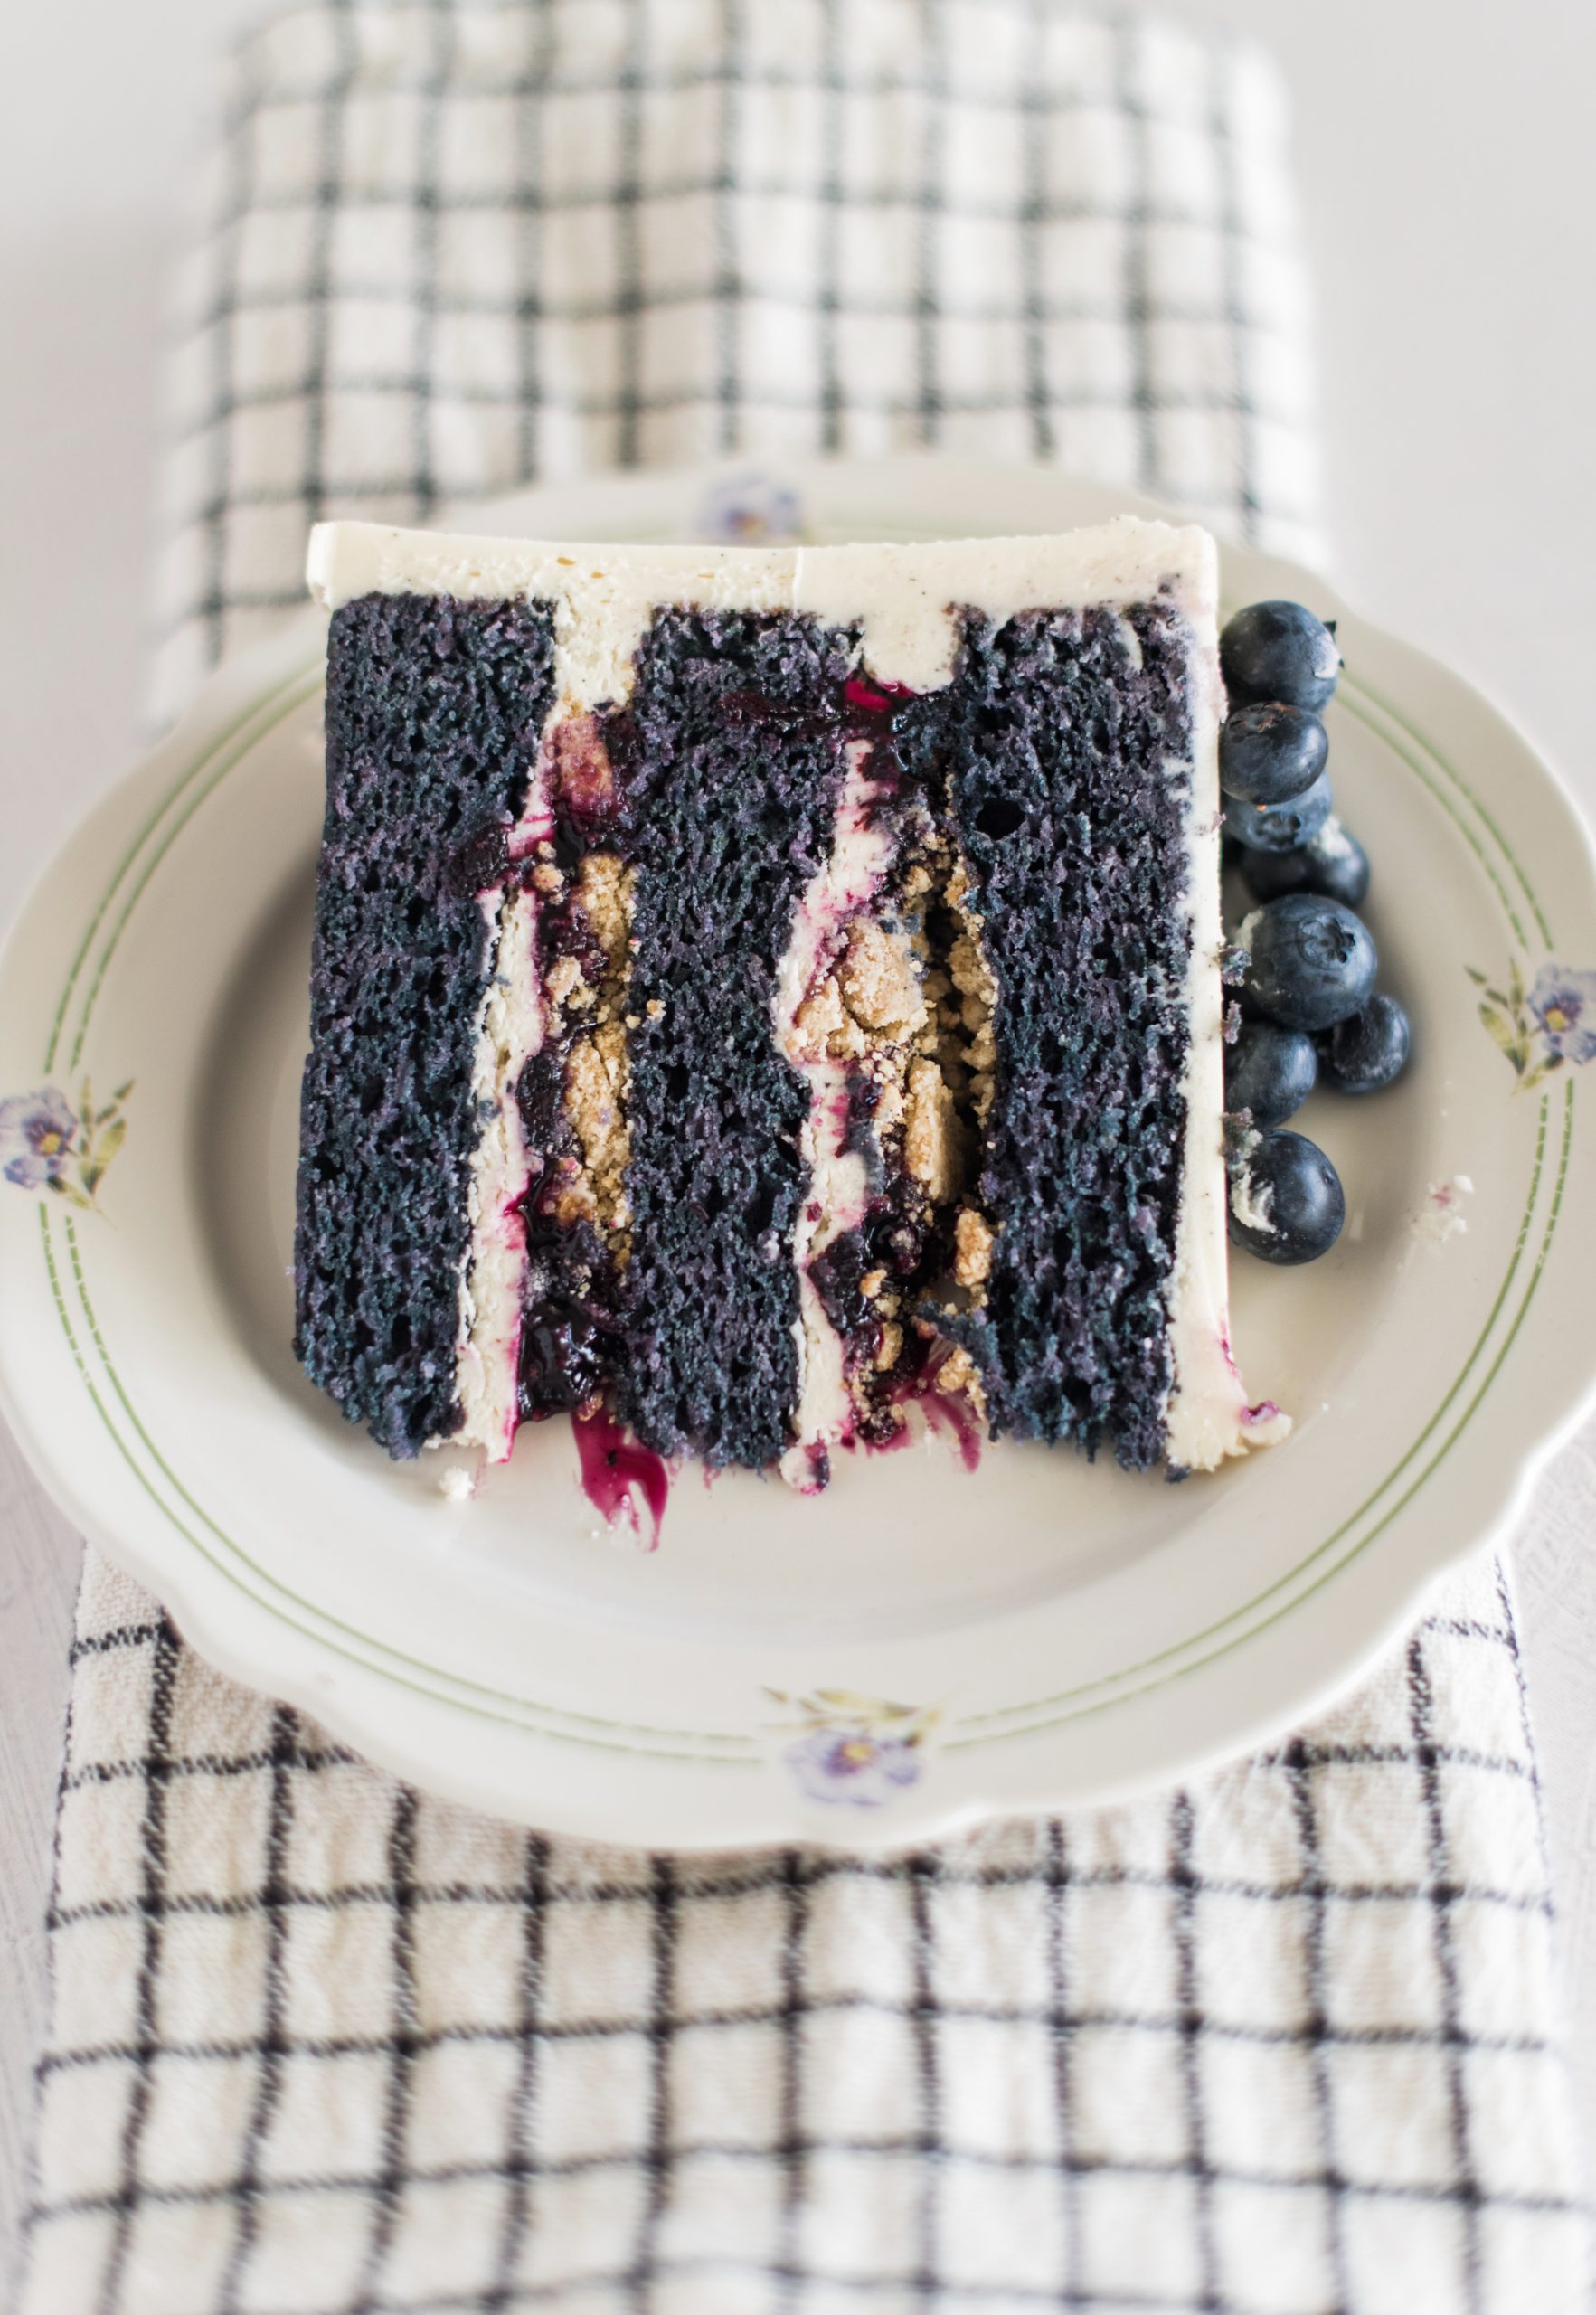 Blueberry Cobbler Cake - blueberry cake layers with vanilla bean buttercream, blueberry compote and cobbler crunch filling. #cakebycourtney #blueberrycobblercake #blueberrycobbler #blueberrycake #blueberrycakerecipe #bestblueberrycakerecipe #blueberrycobblerrecipe #summerdessertrecipes #summercakerecipes #bestsummercakes #bestblueberrydesserts #summercake #howtomakebuttercreamfrosting #howtocakeit